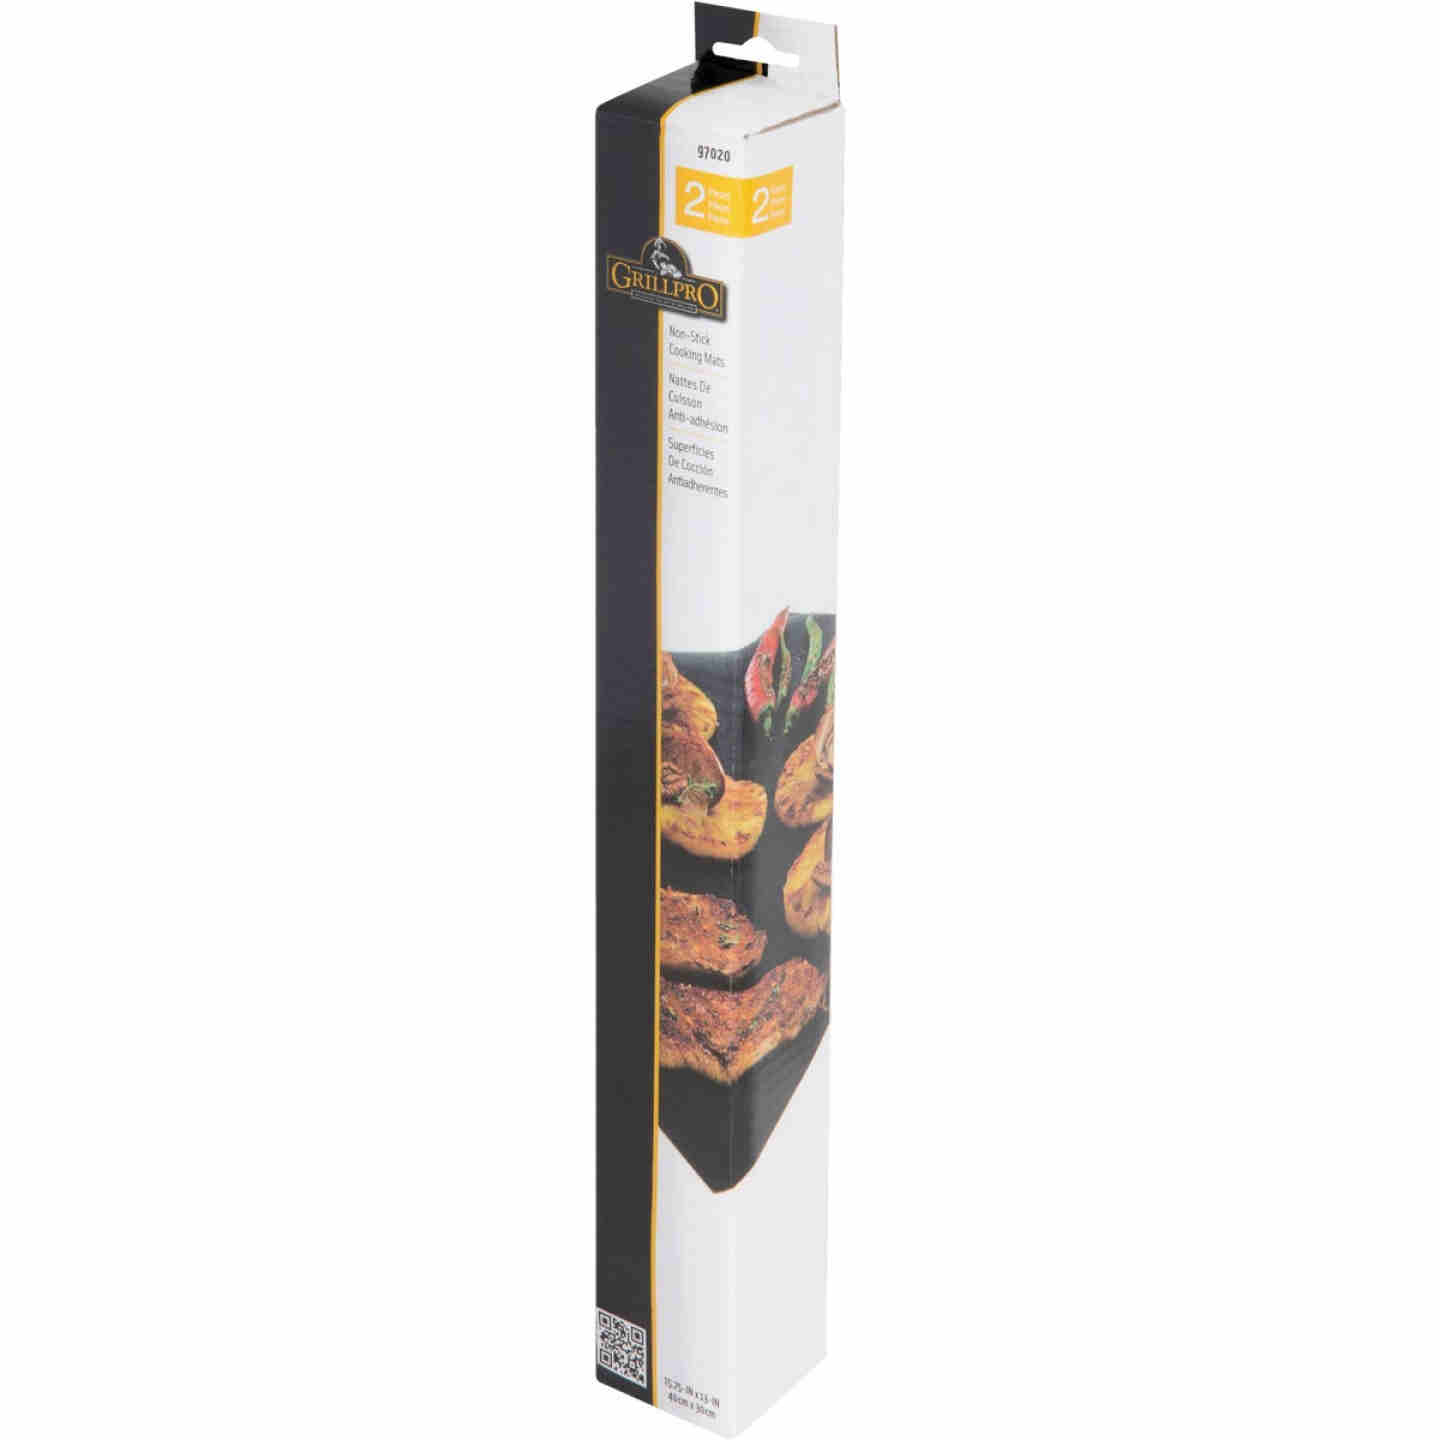 GrillPro 15.75 In. W. x 13 In. L. Non-Stick Cooking Mat (2-Pack) Image 3